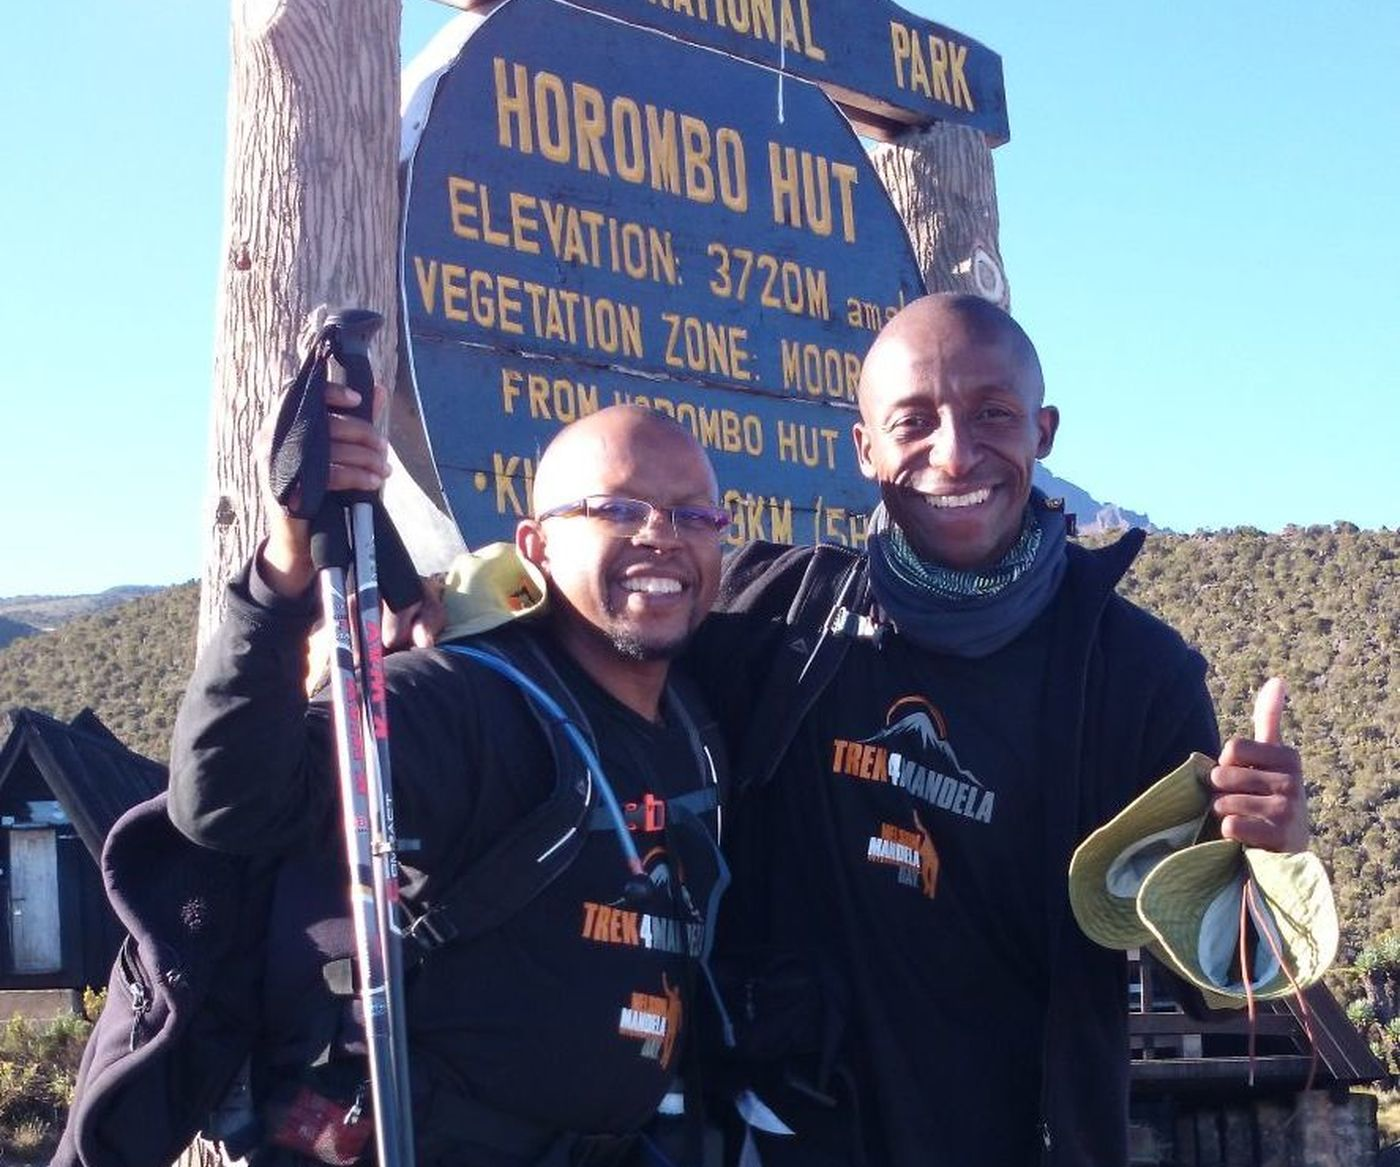 Sello And  Richard At  Horombo  Hut2